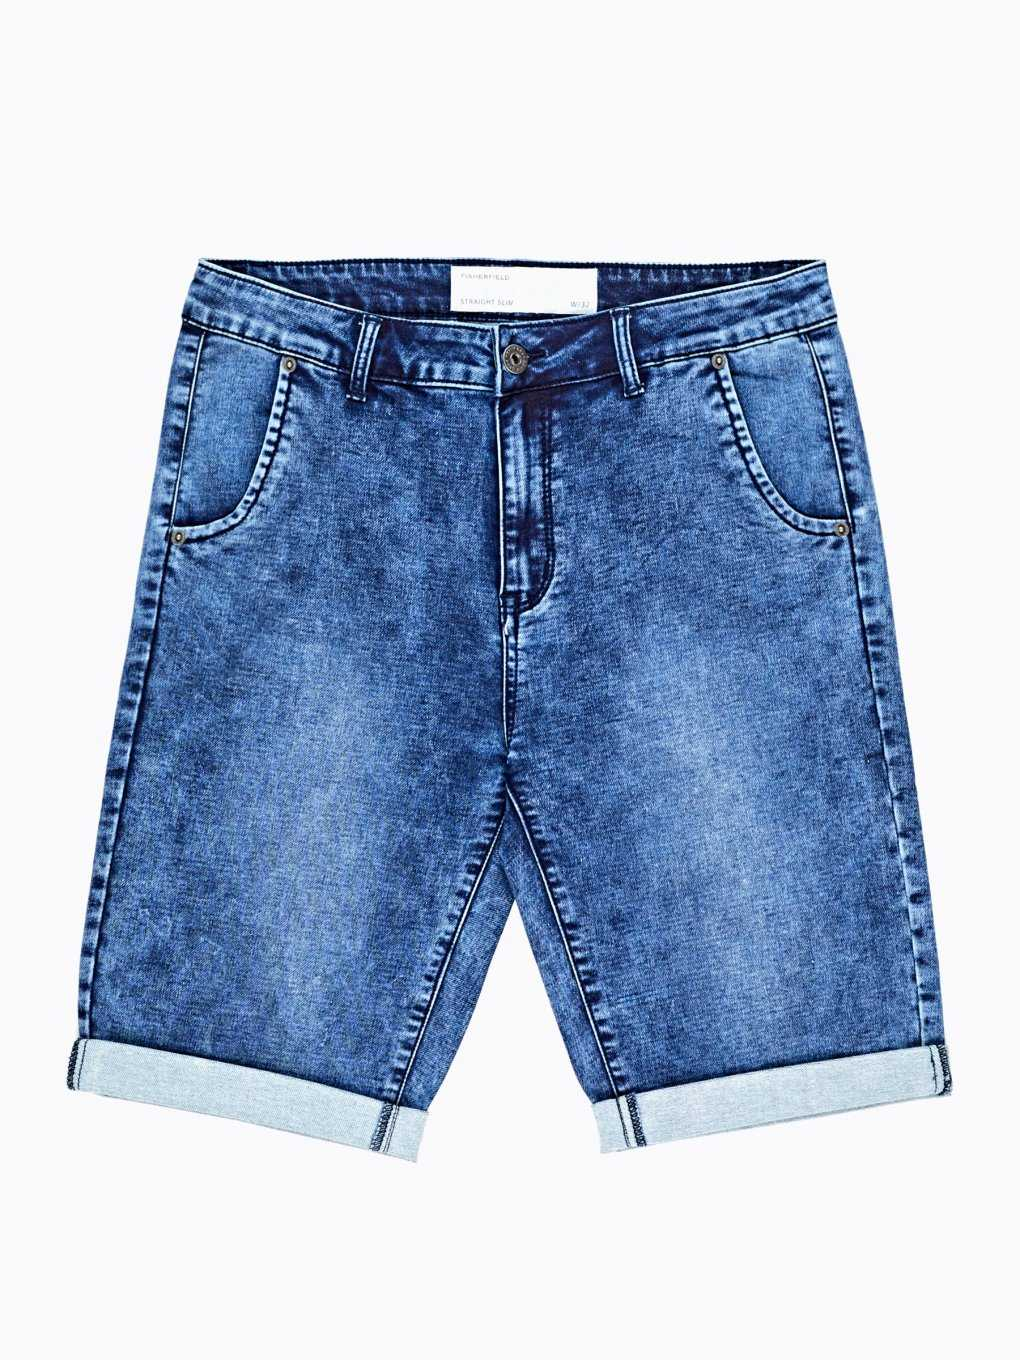 Knit denim shorts